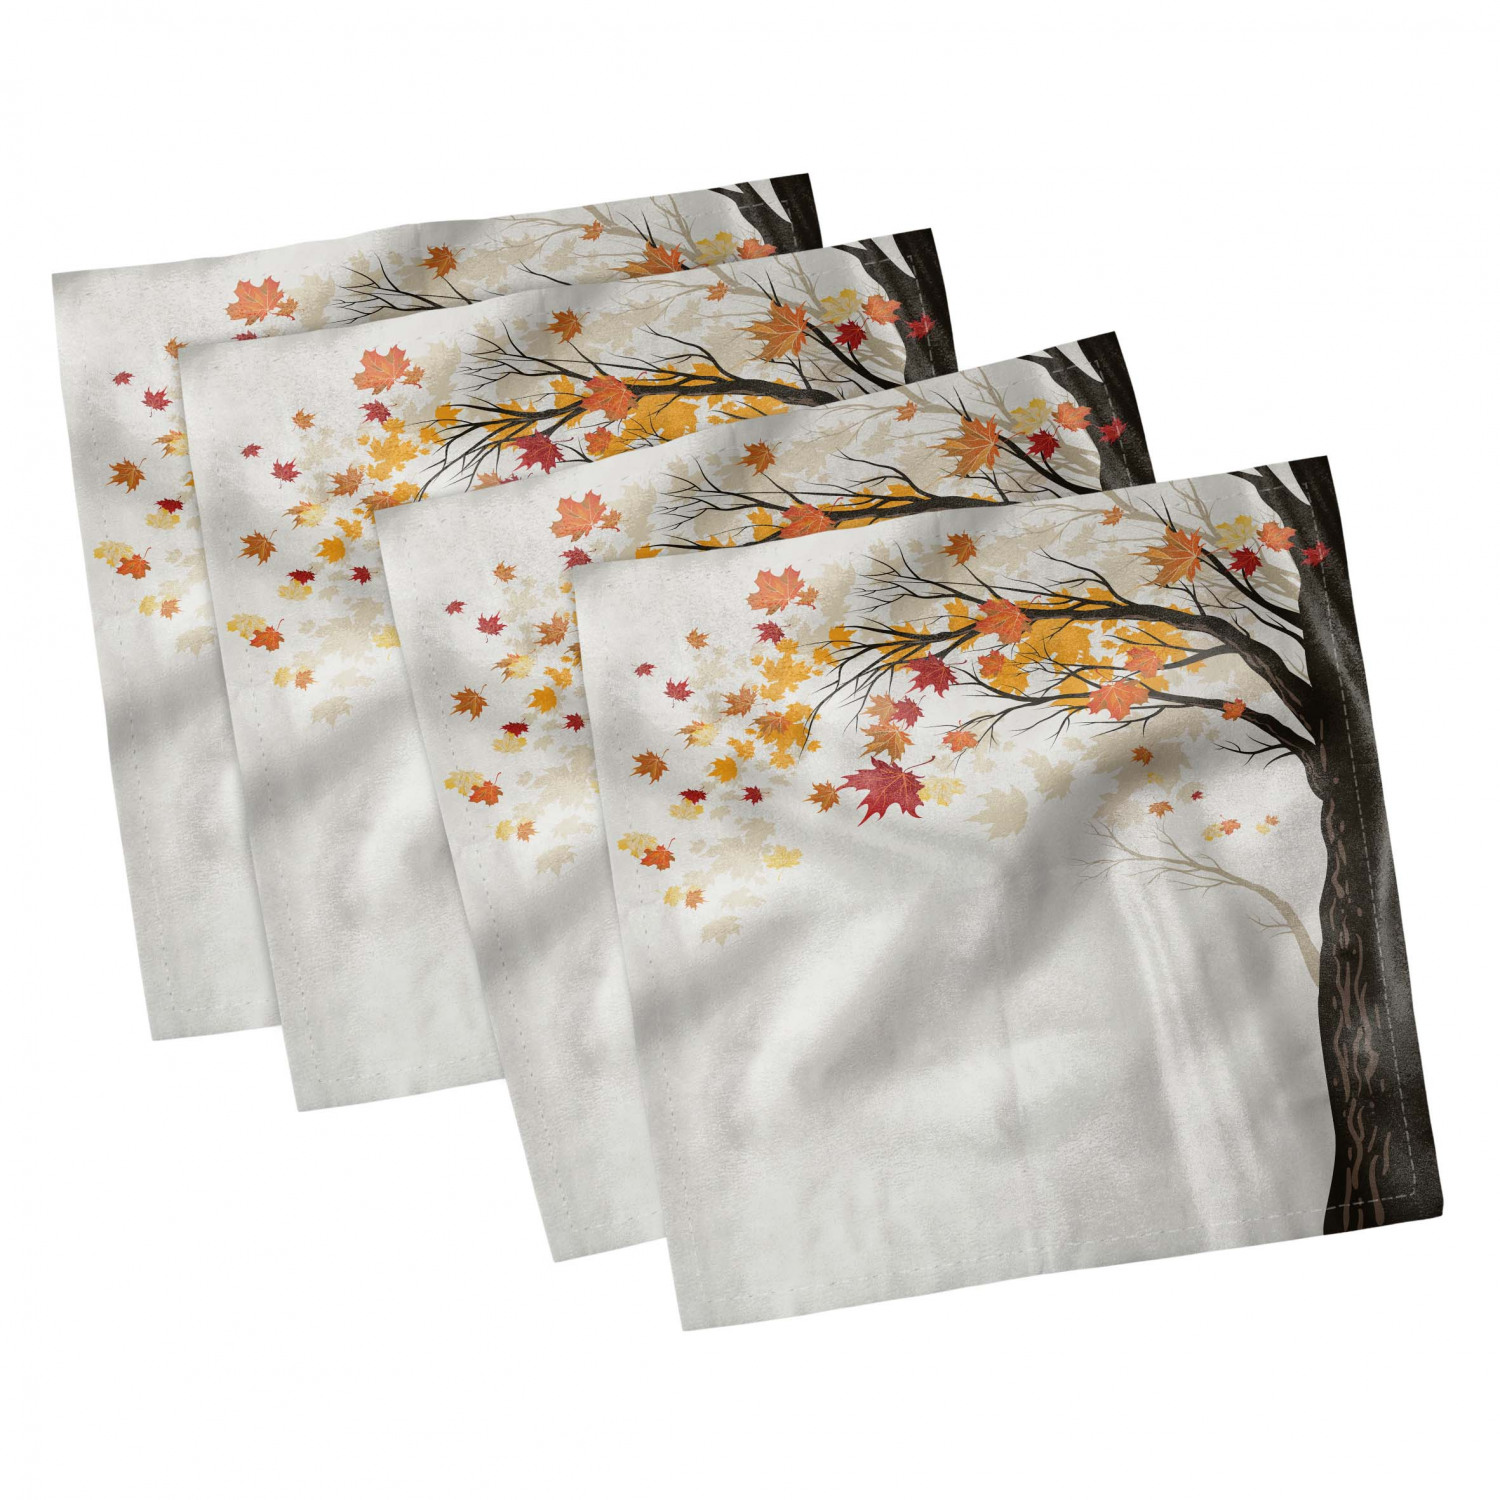 thumbnail 99 - Ambesonne-Autumn-Fall-Decorative-Satin-Napkins-Set-of-4-Party-Dinner-Fabric